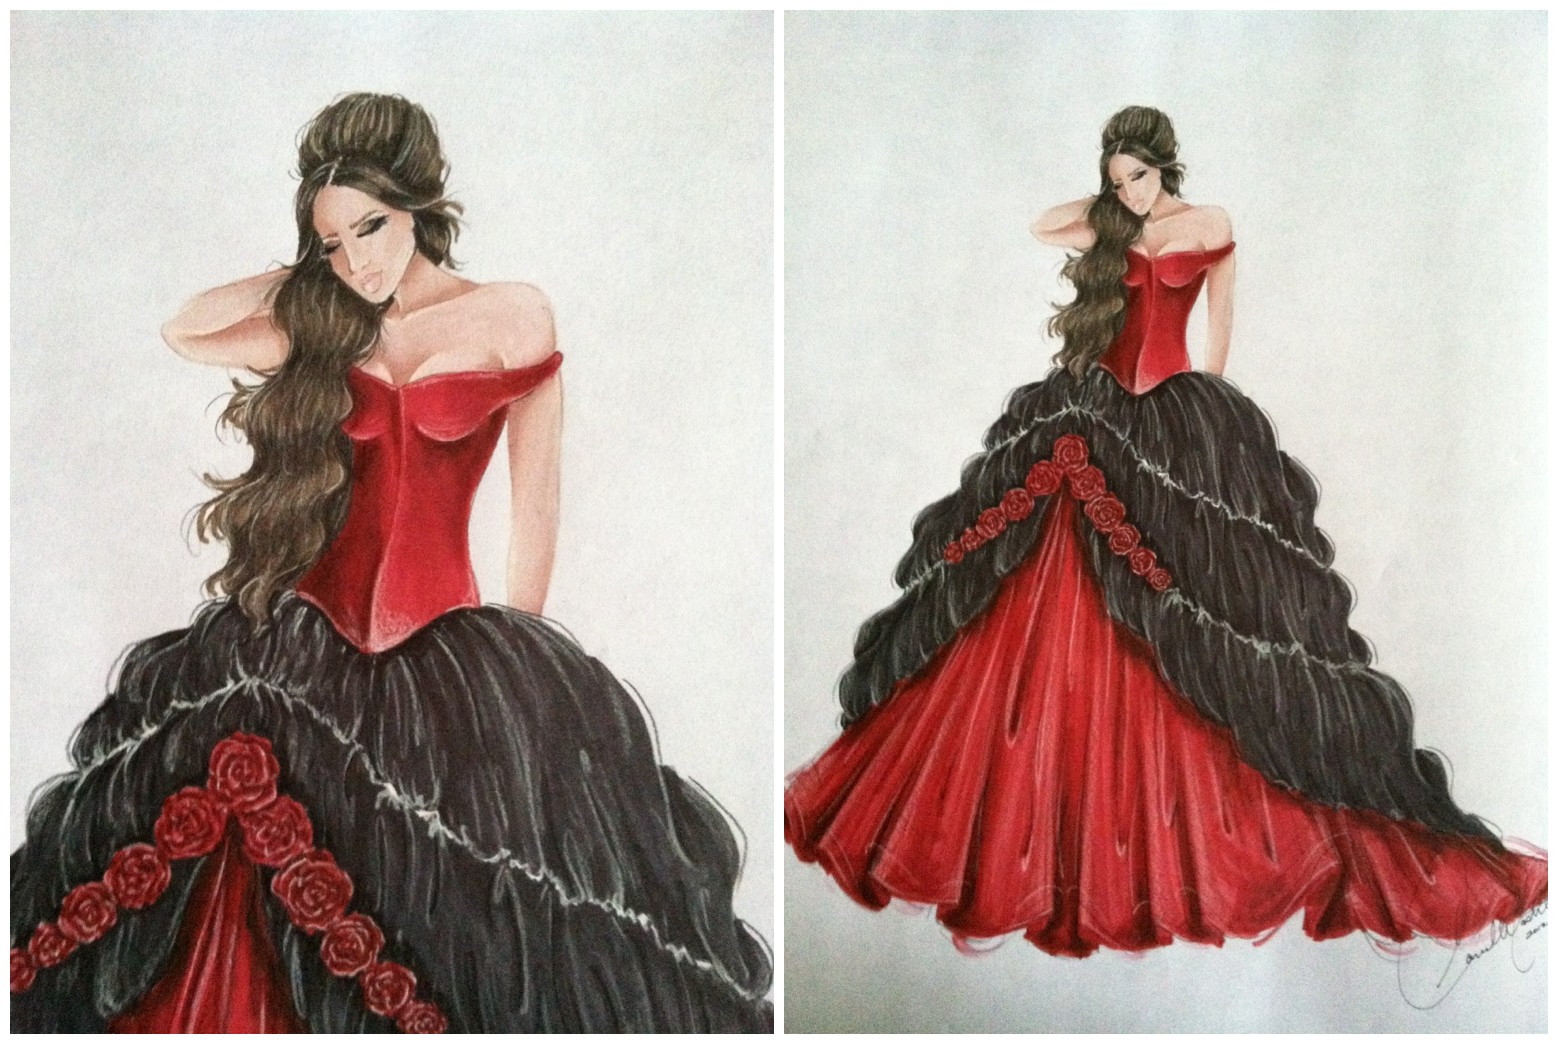 Celebrity News & Gossip: Vampire Diaries Inspired Ball Gown Party